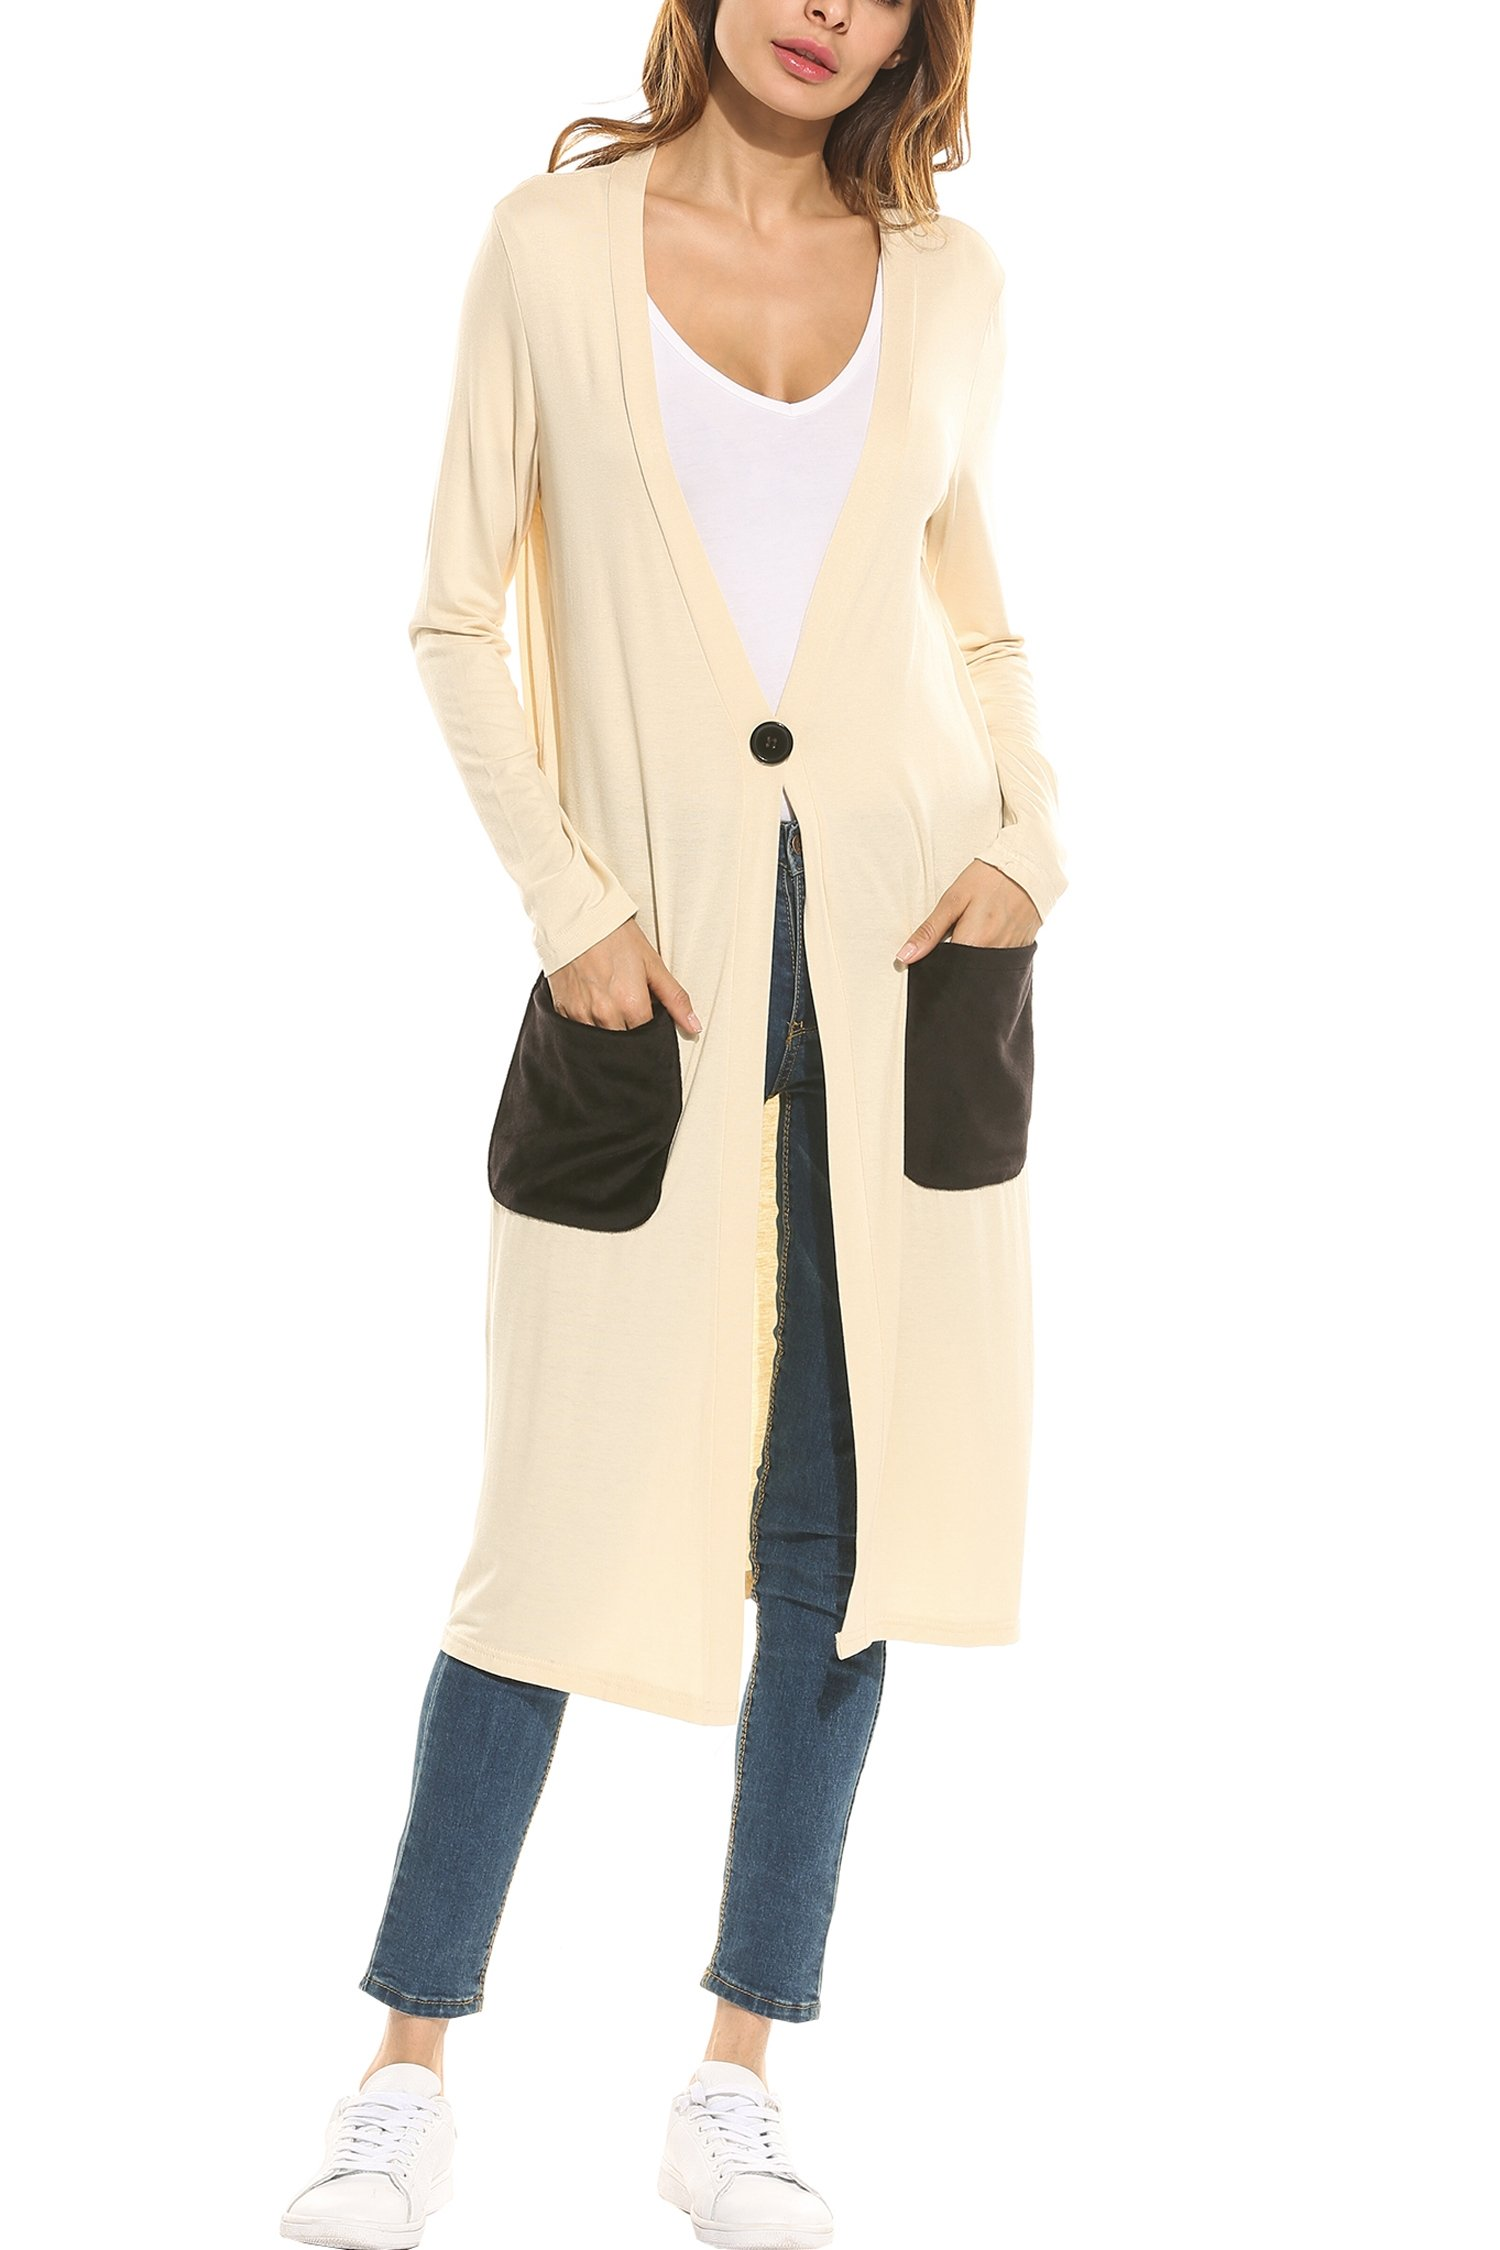 Meaneor Women\'s Open Front Long Sleeve Waterfall Classic Knit Cardigan Off White M